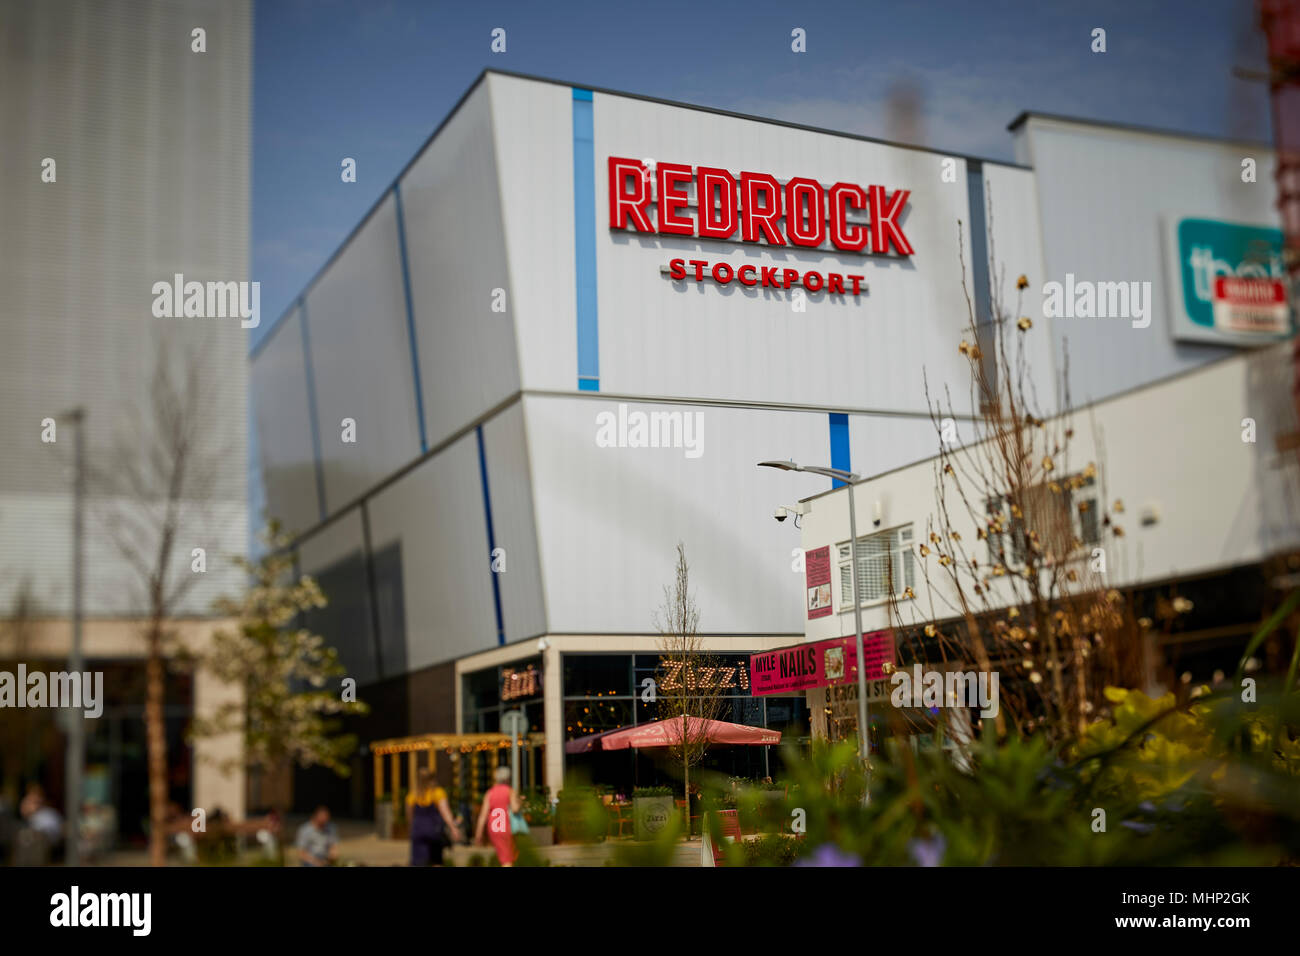 Stockport town centre, Merseyway Redrock development from princess Street looking at the controversially names Suffragette Square - Stock Image